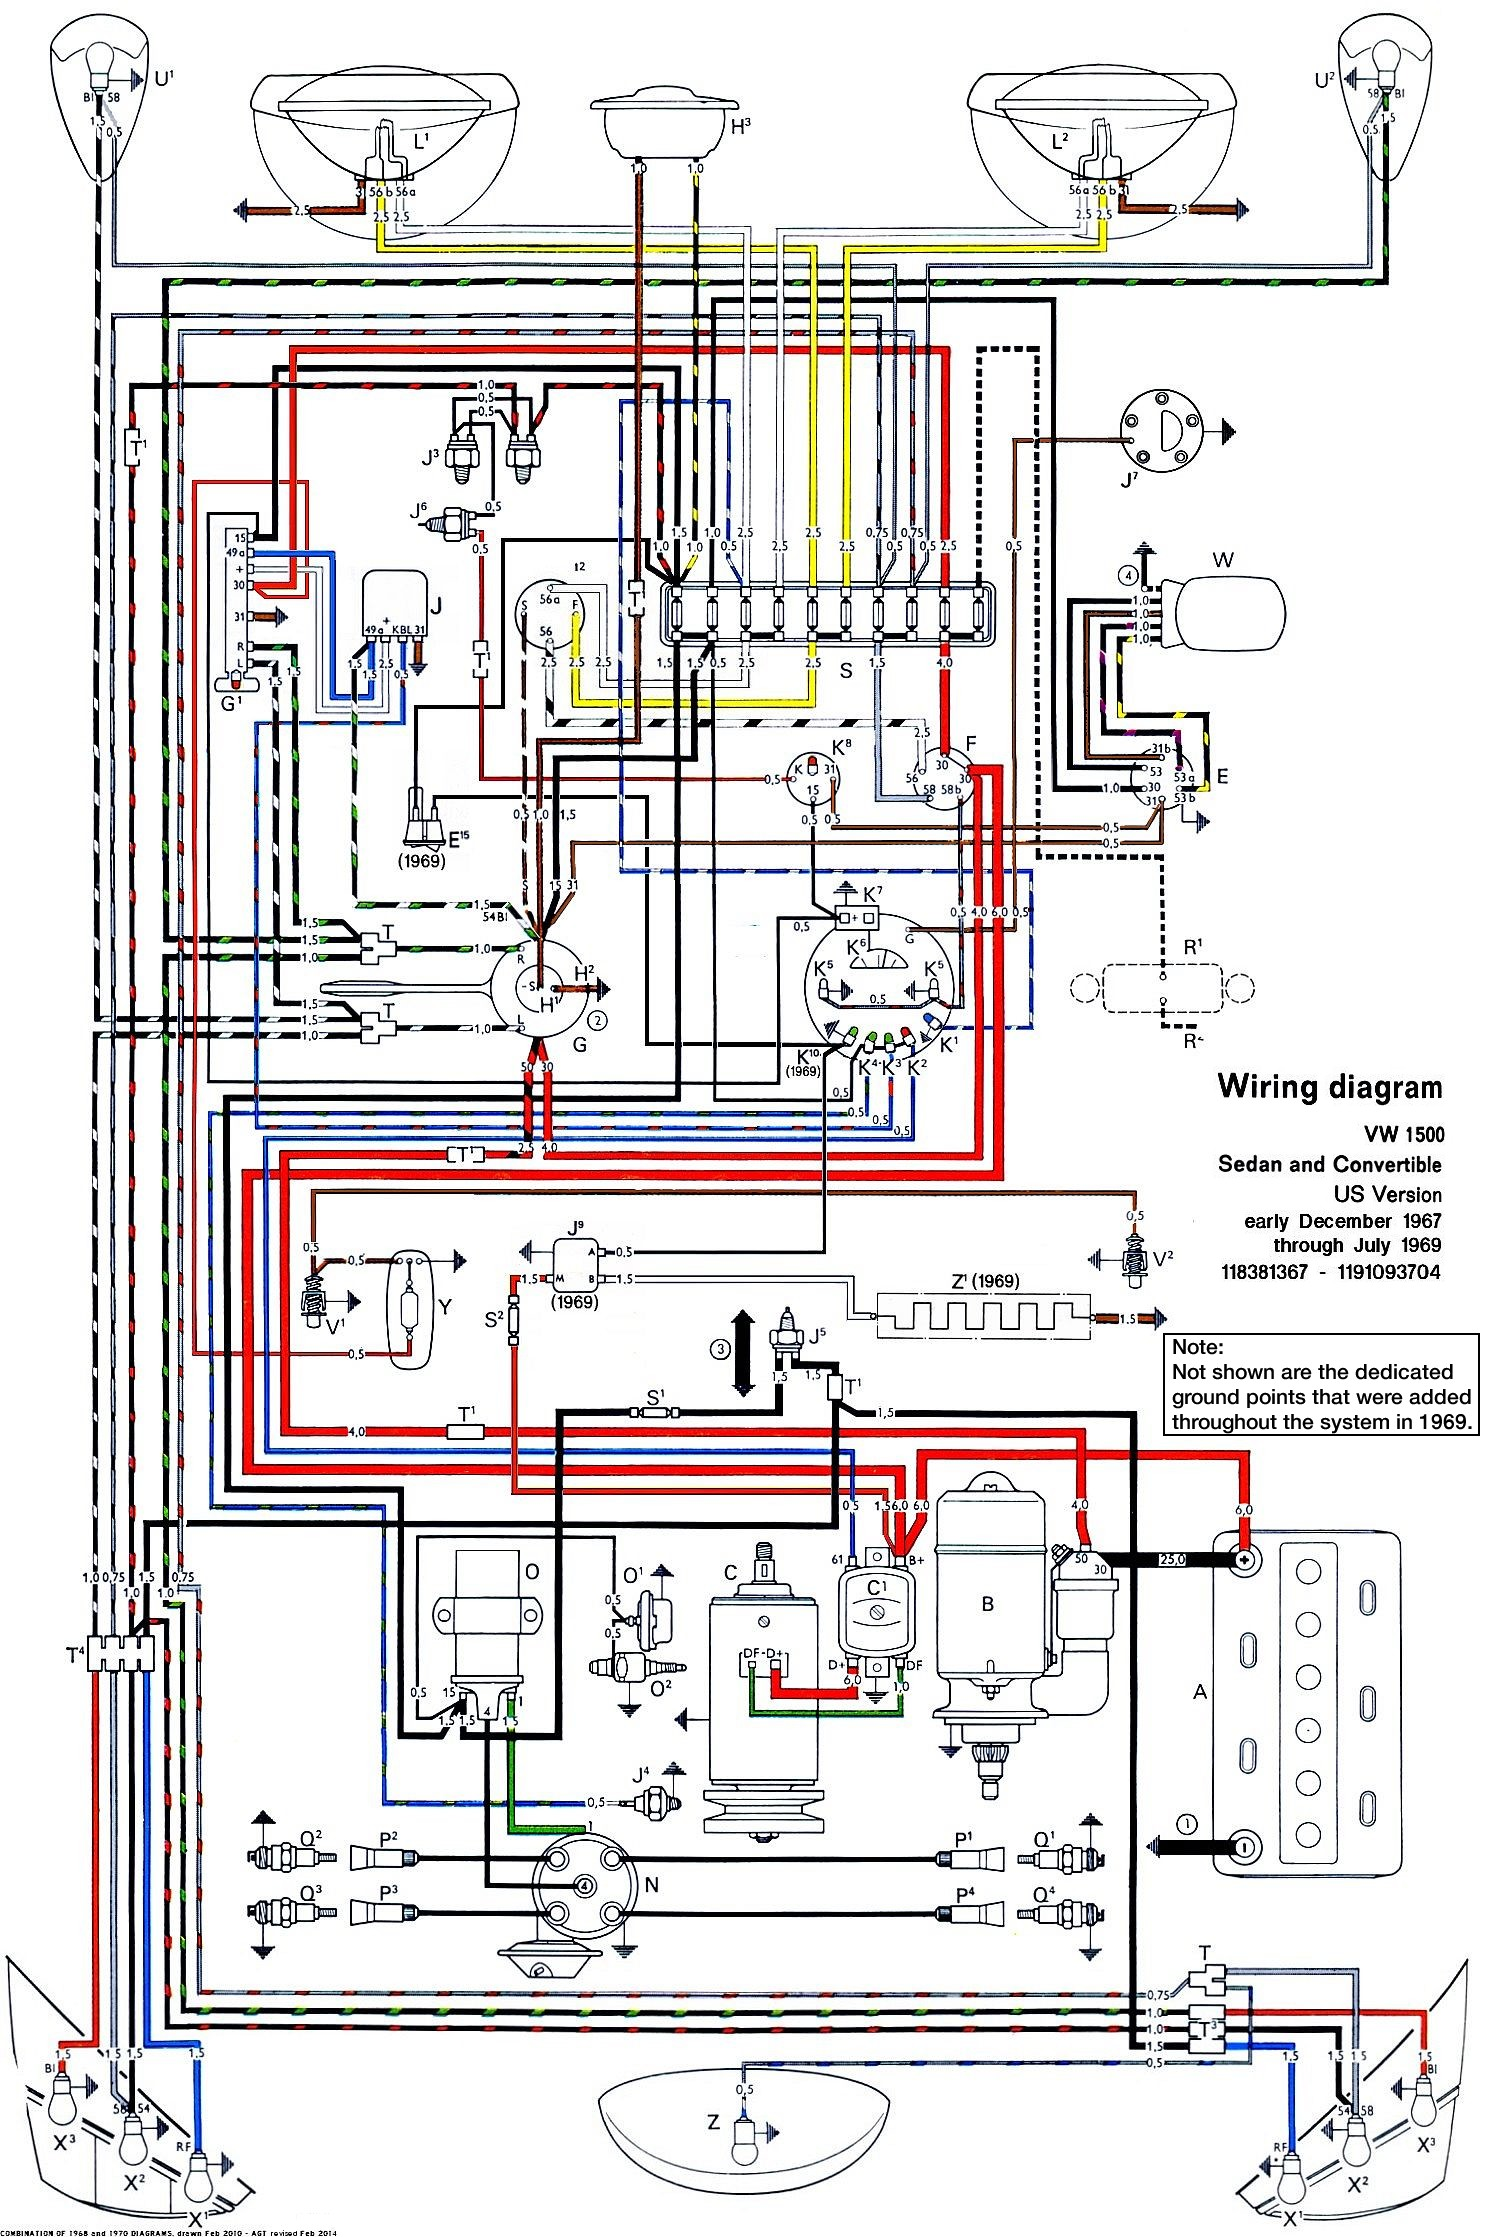 585C7AC 65 Bug Ignition Coil Wiring Diagram | Wiring Resources on jaguar s type wiring diagram, vw type 1 maintenance, vw type 1 suspension, vw type 1 fuel pump, vw type 1 fuel gauge, vw type 1 exhaust, vw type 1 air conditioning, vw type 1 generator, vw type 1 fan belt, vw type 1 dimensions, vw type 1 body, vw type 1 flywheel, vw type 1 starter, vw type 1 brakes, vw type 1 wheels, vw type 1 frame, volkswagen type 3 wiring diagram, vw type 1 torque specs,